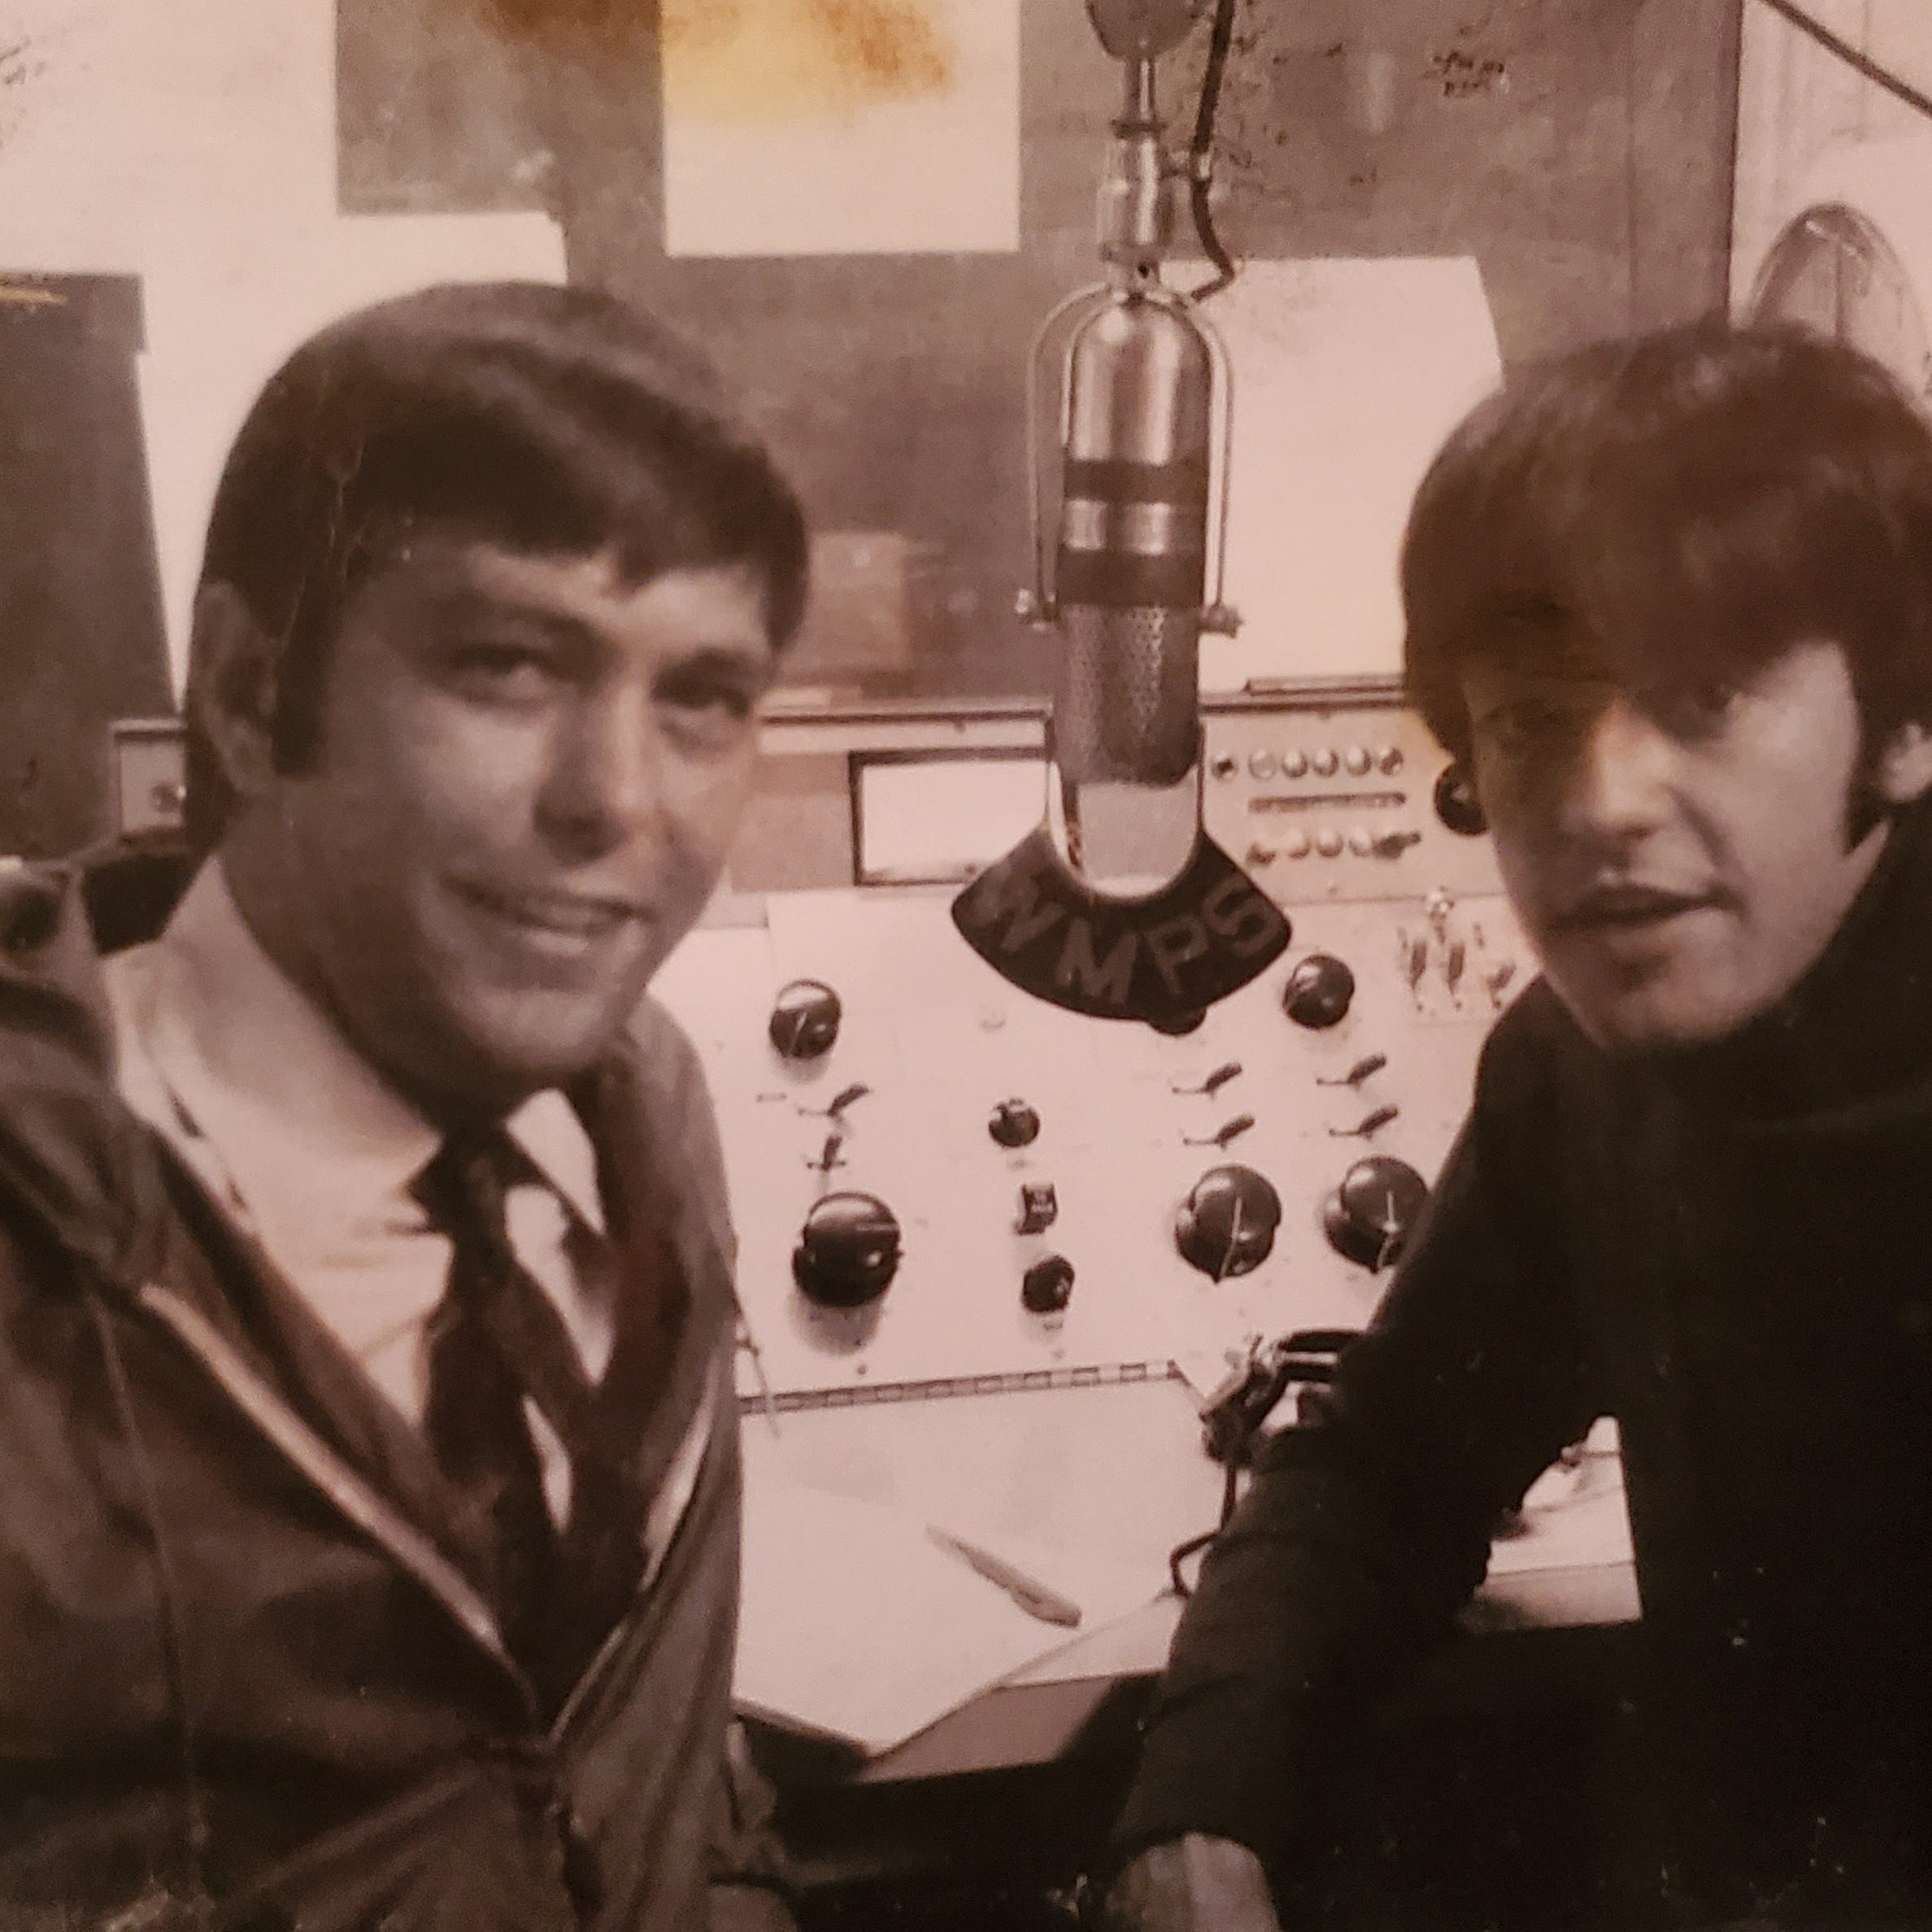 Johnny Dark, the Memphis deejay and TV broadcaster who introduced the Beatles, has died